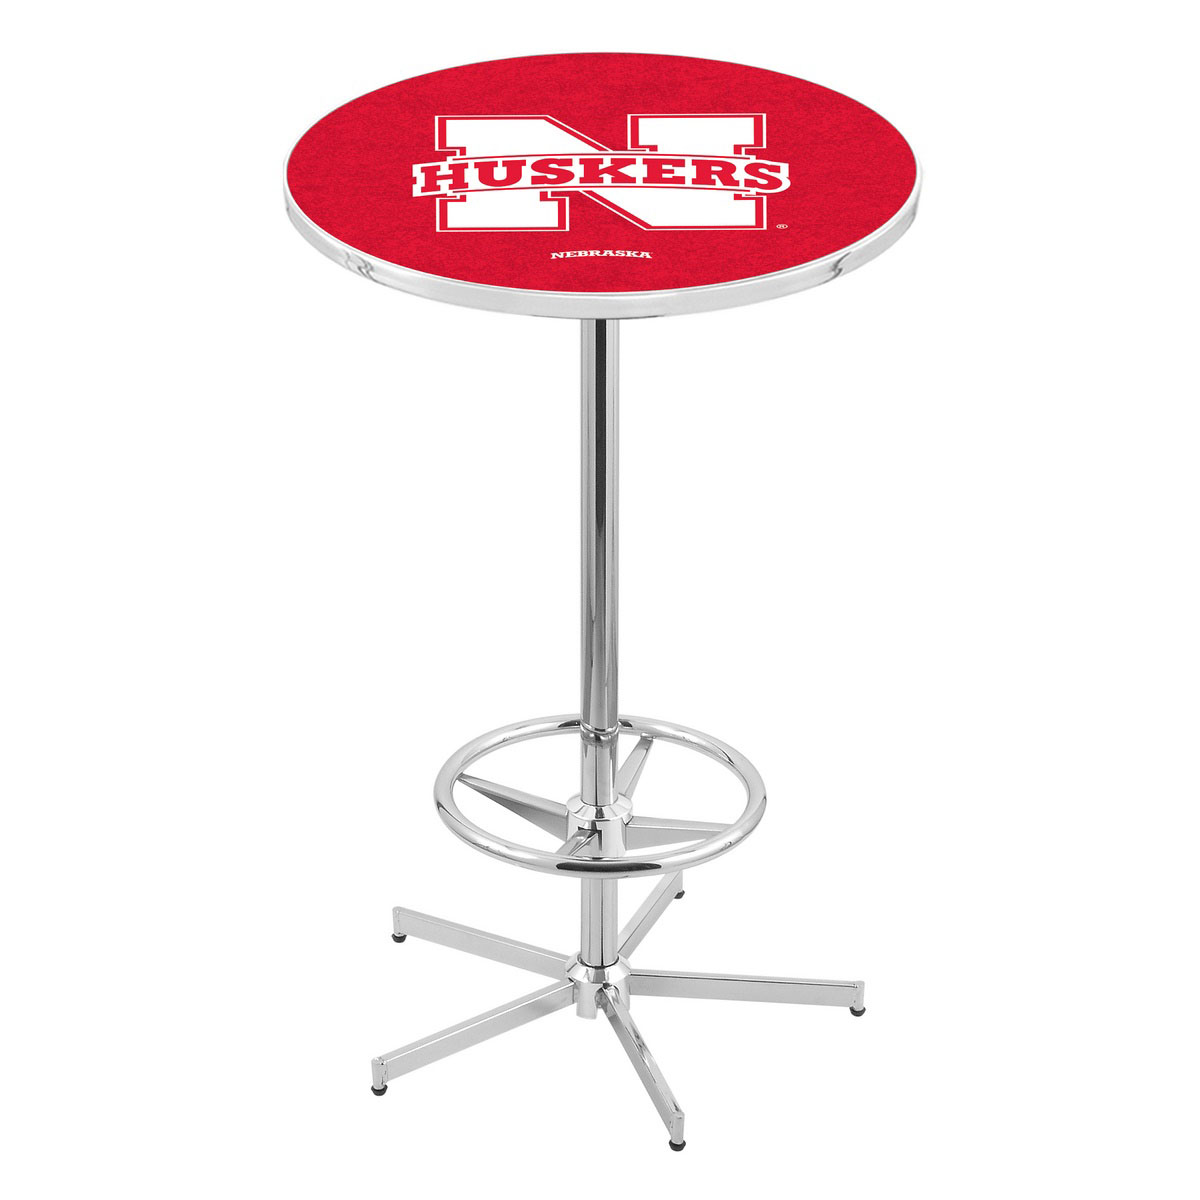 Check out the Chrome Nebraska Pub Table Product Photo